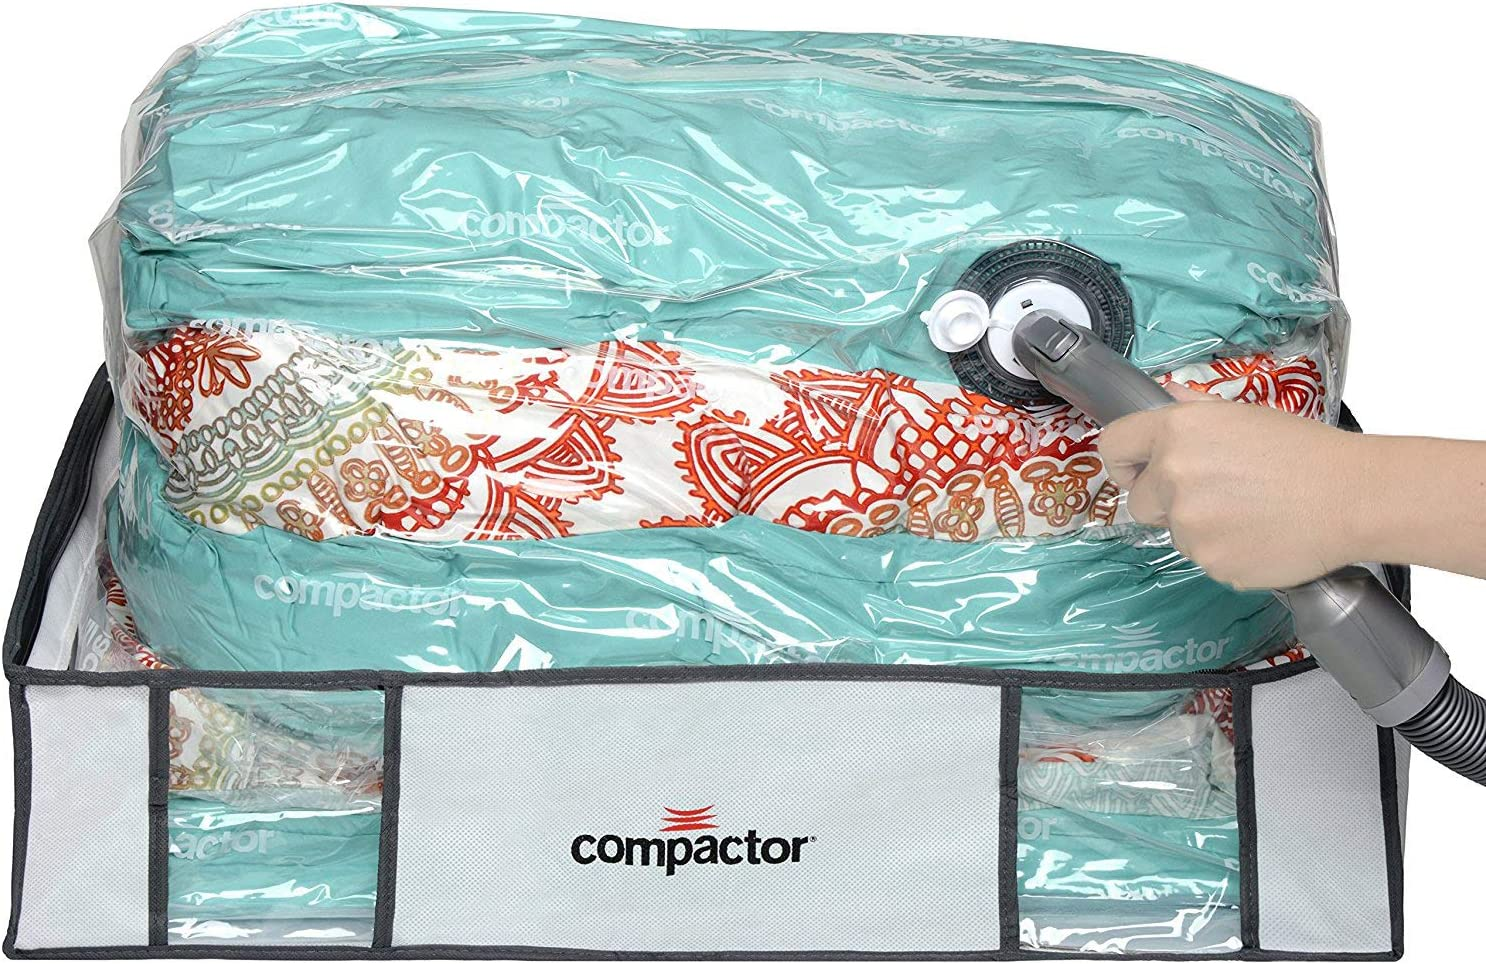 """Compactor Space Saver Vacuum Storage Solution Vacuum Bag to Protect Clothes, Pillows, Duvets, Comforters, Blankets (L (26""""x20""""x6""""), Classic White)"""